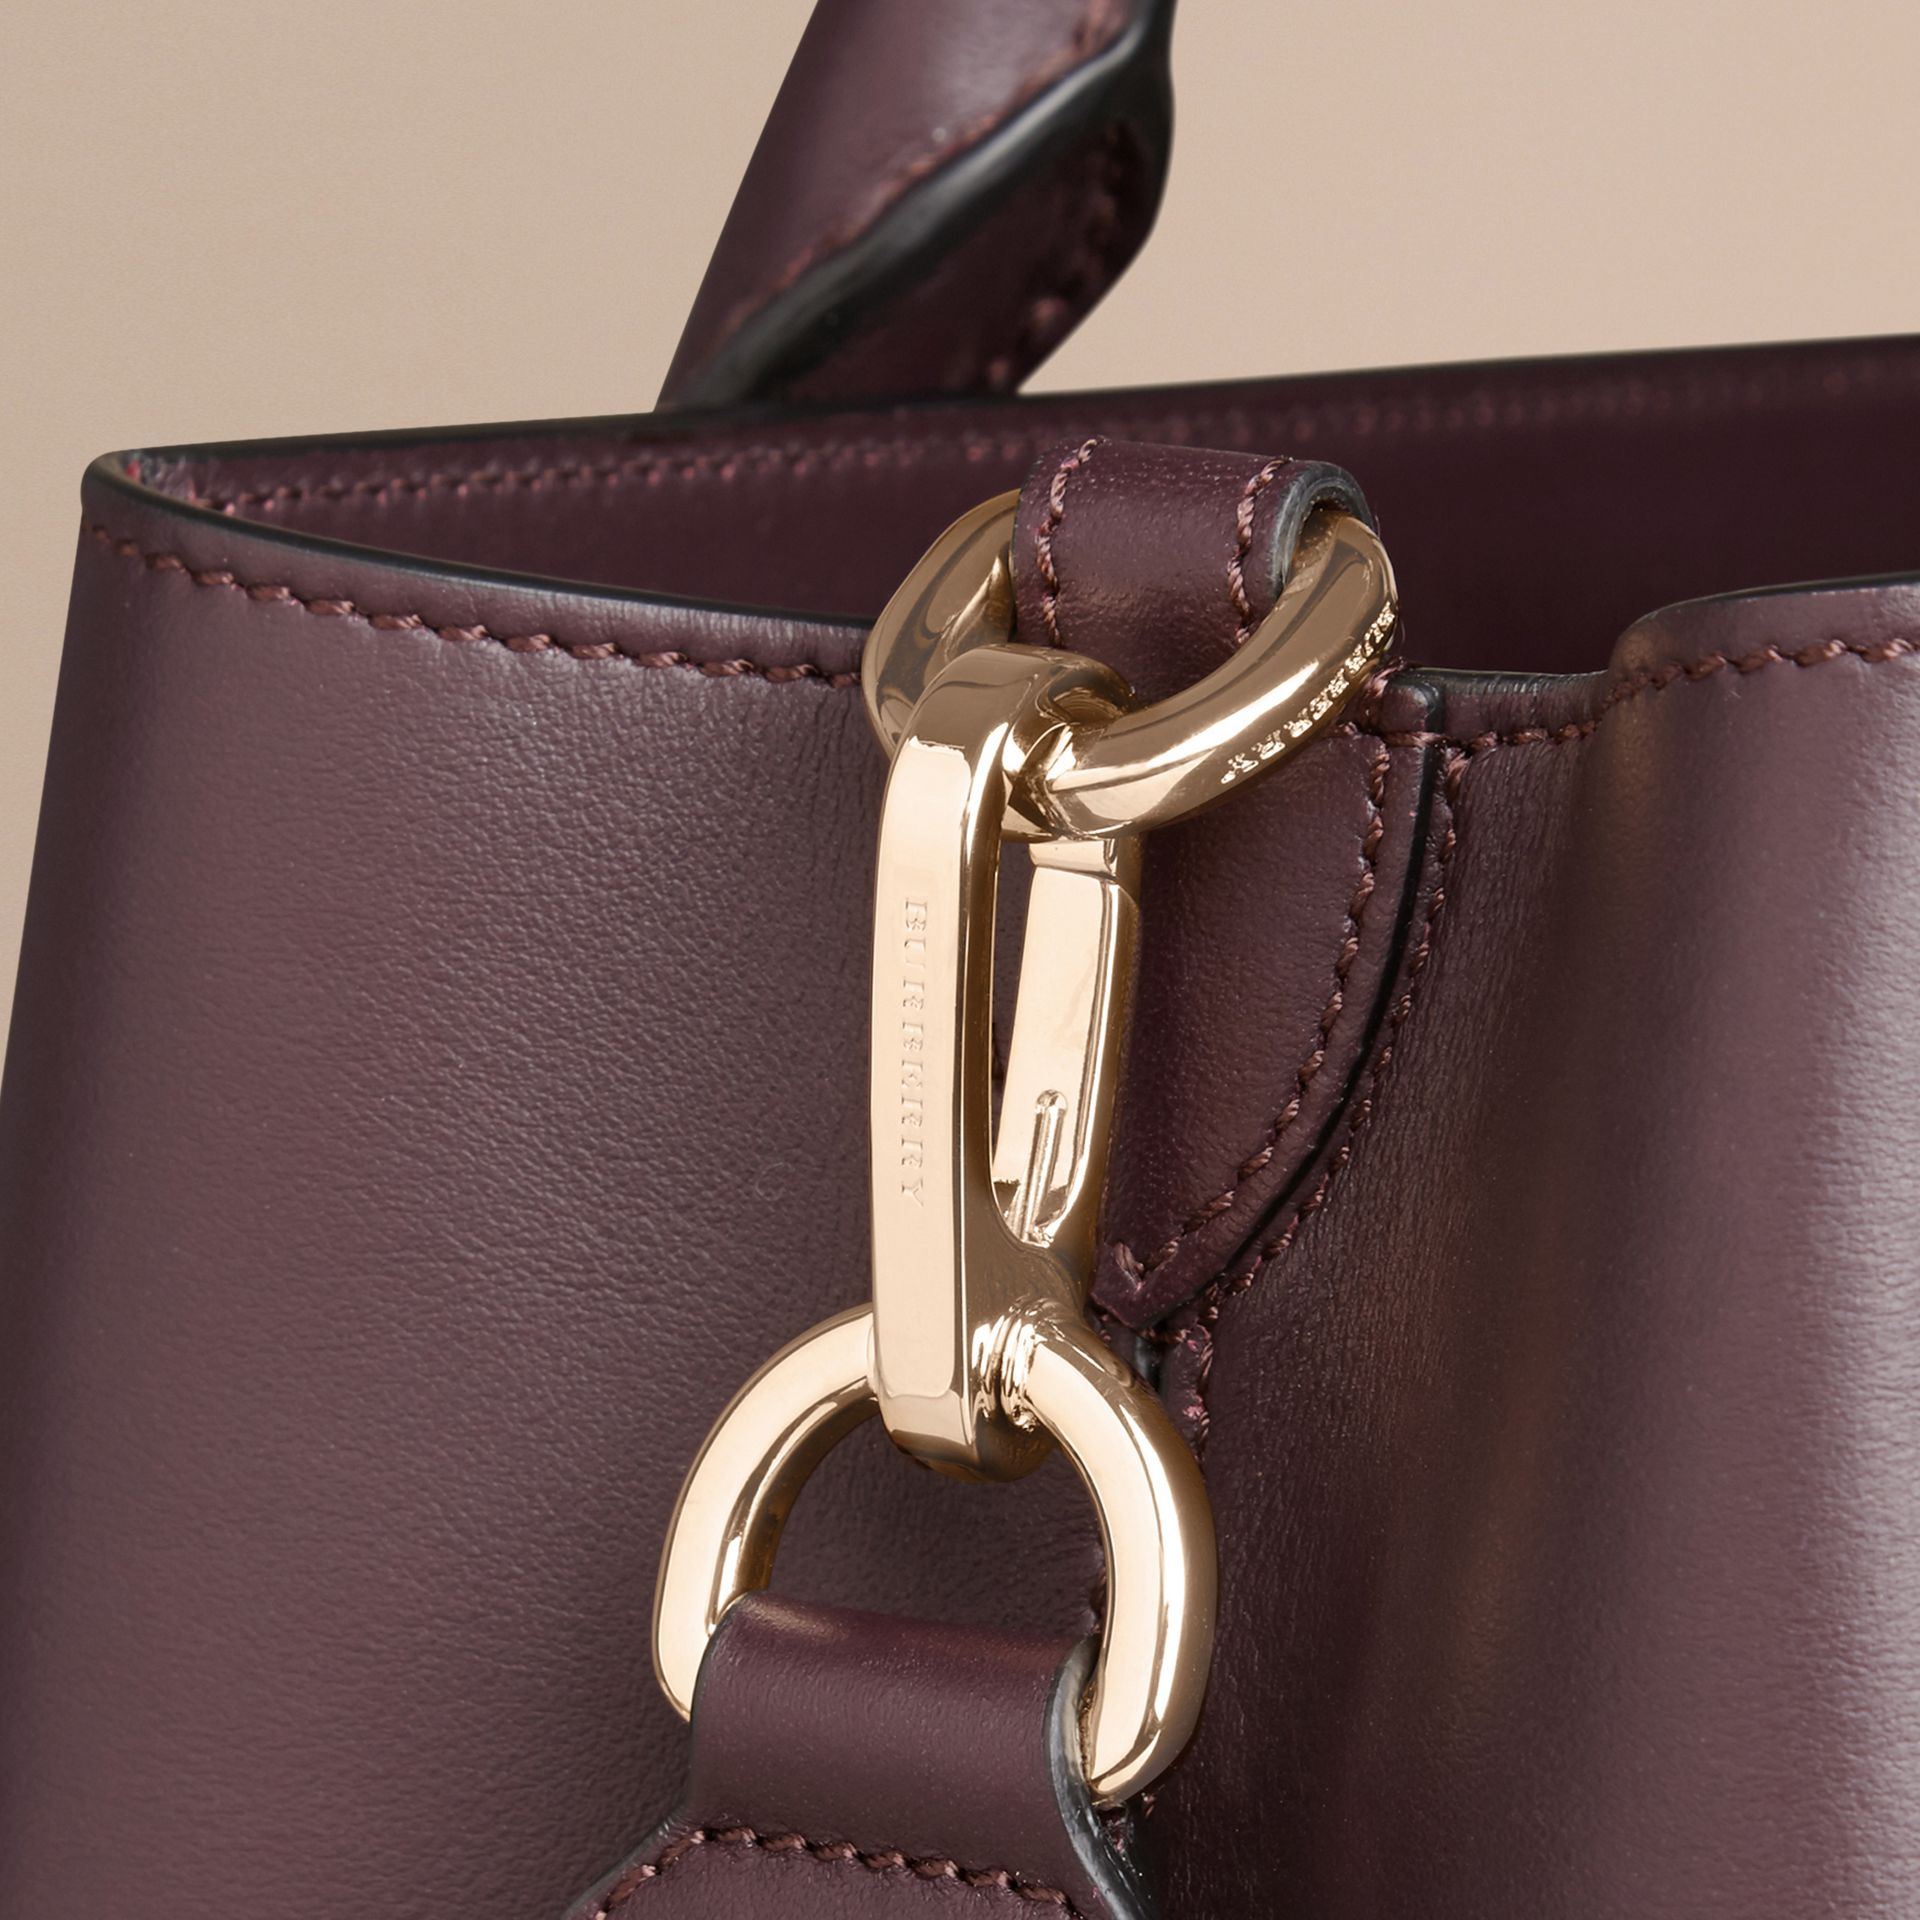 Dark amethyst The Medium Saddle Bag in Smooth Bonded Leather Dark Amethyst - gallery image 6